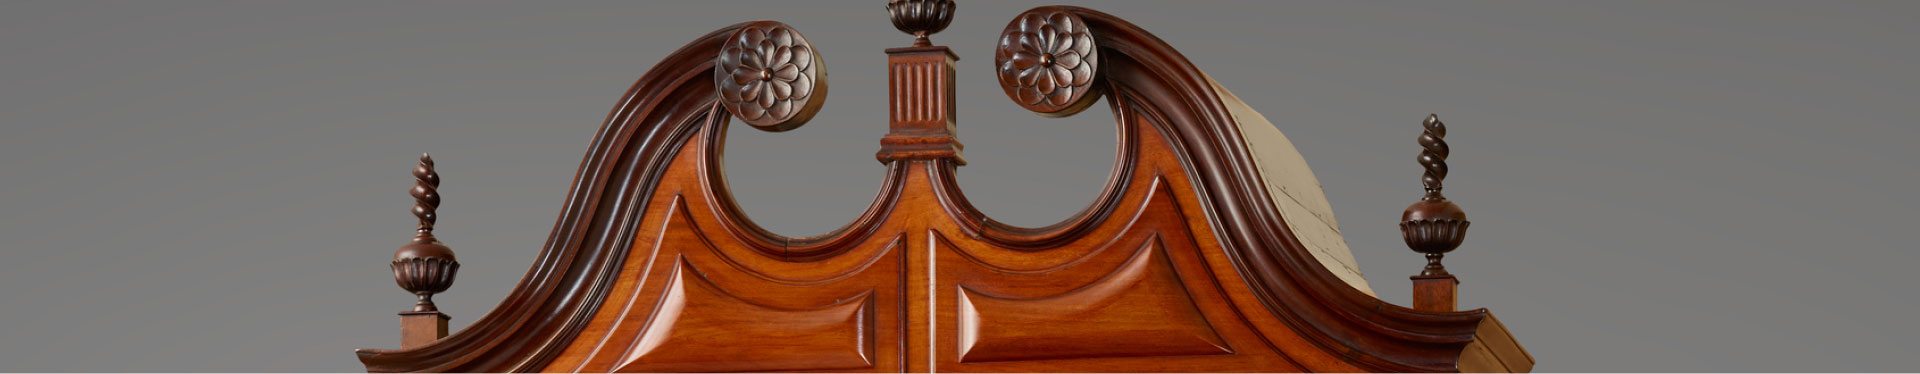 american-furniture-and-decorative-arts-banner-NEW_5_1_20170125105857.jpg